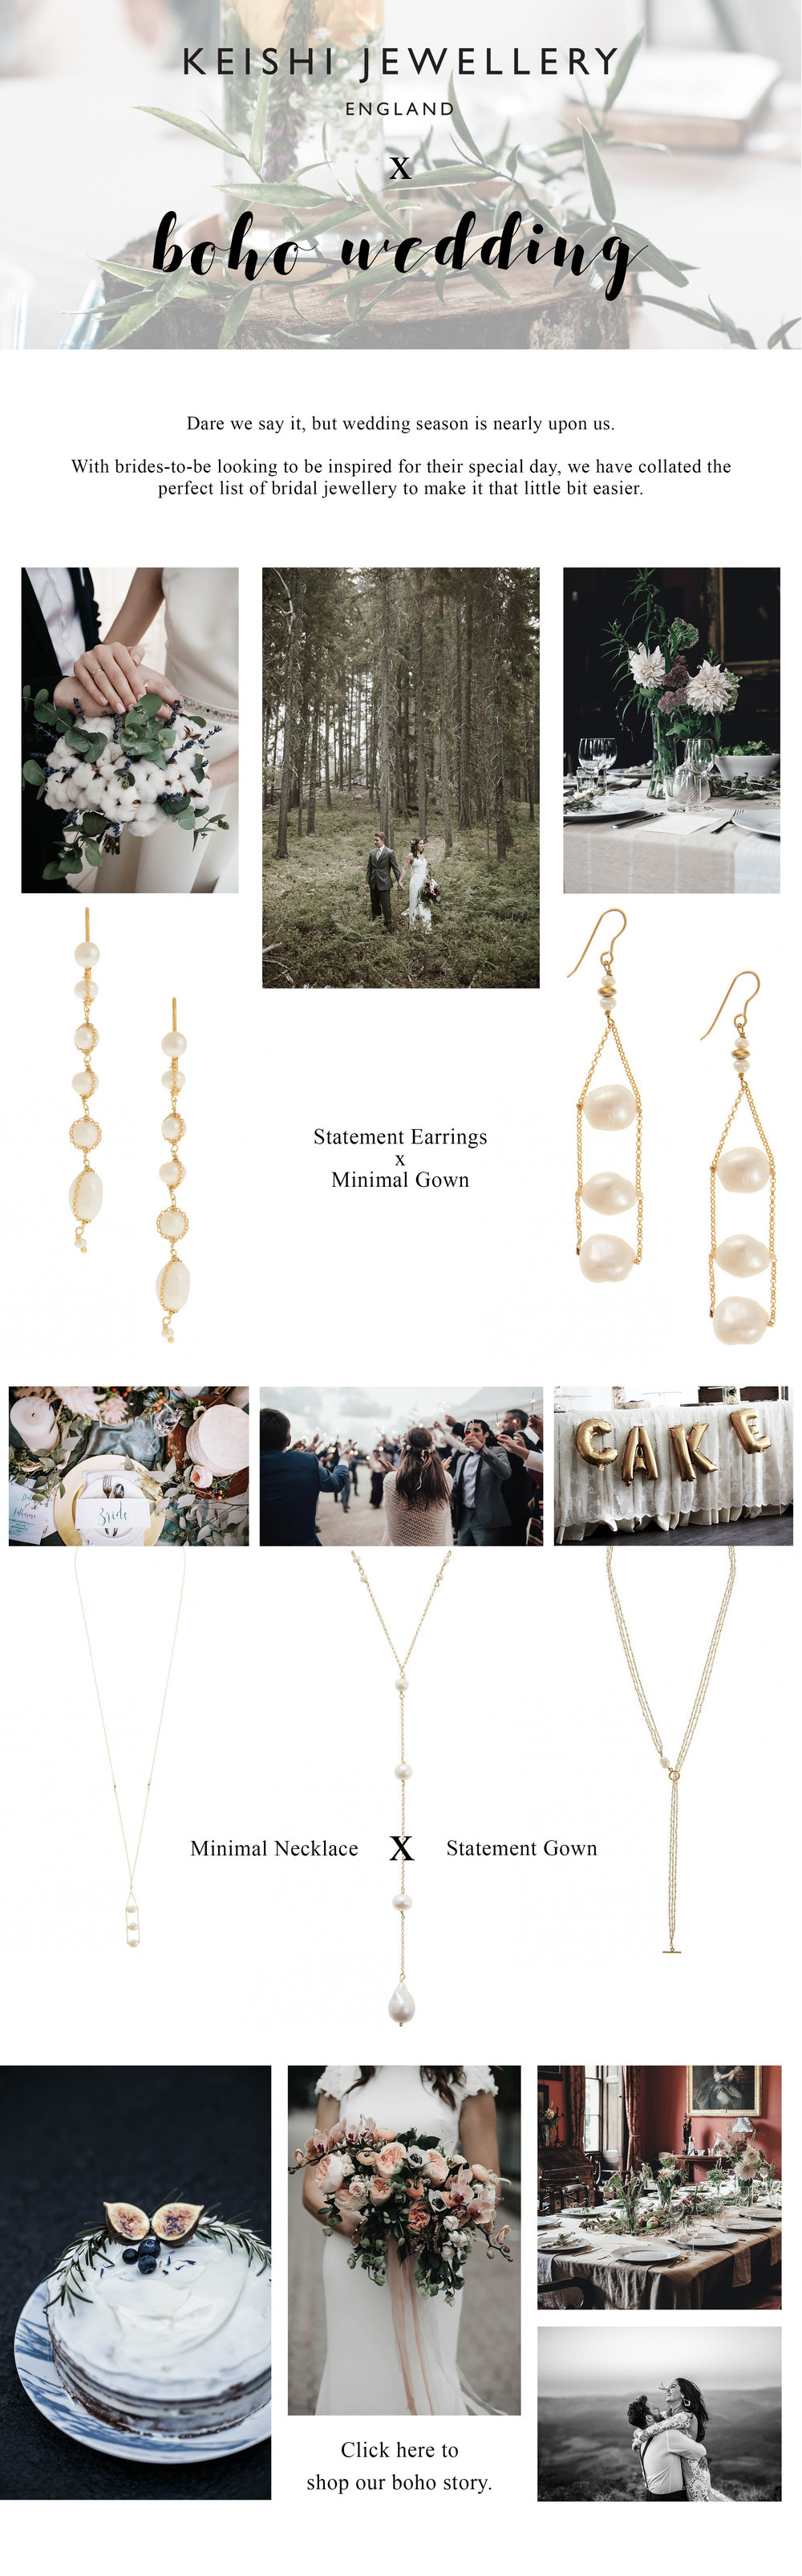 Keishi Jewellery x Boho Wedding.jpg